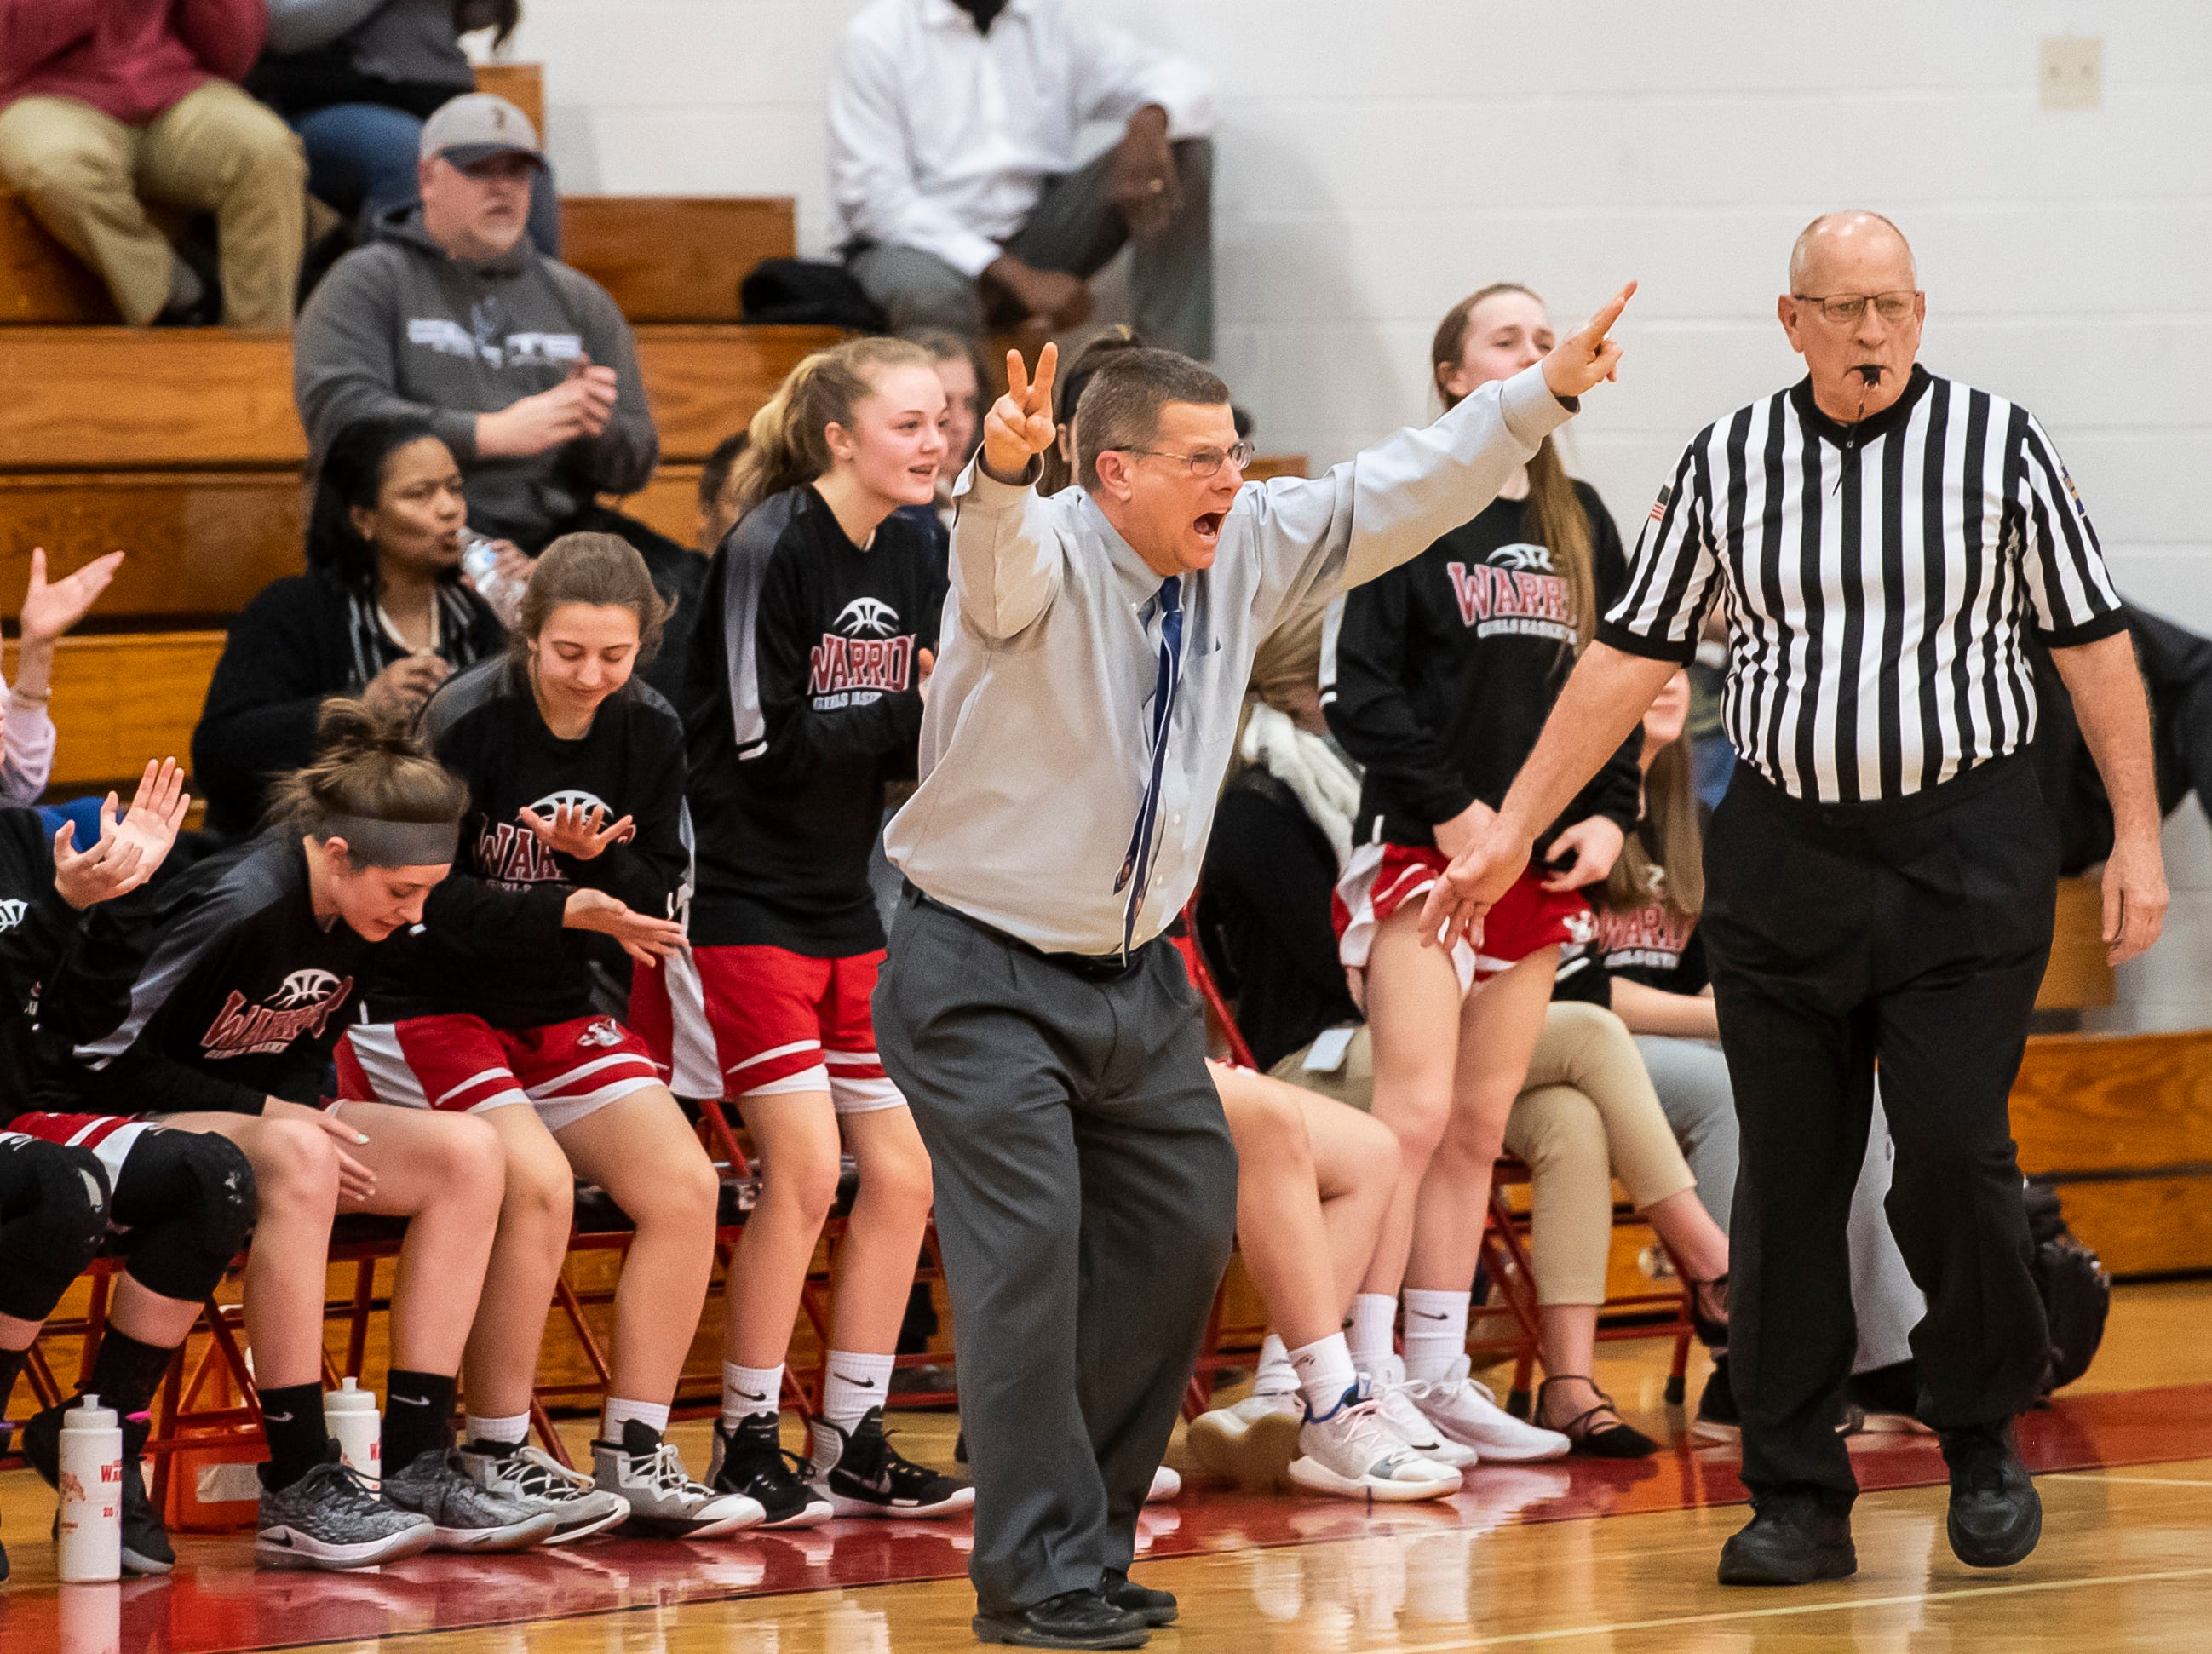 Susquehannock head coach Dave Shreiner reacts after the Warriors score against Dallastown in a YAIAA quarterfinal game at Dover High School Friday, February 8, 2019. The Wildcats won 42-29.